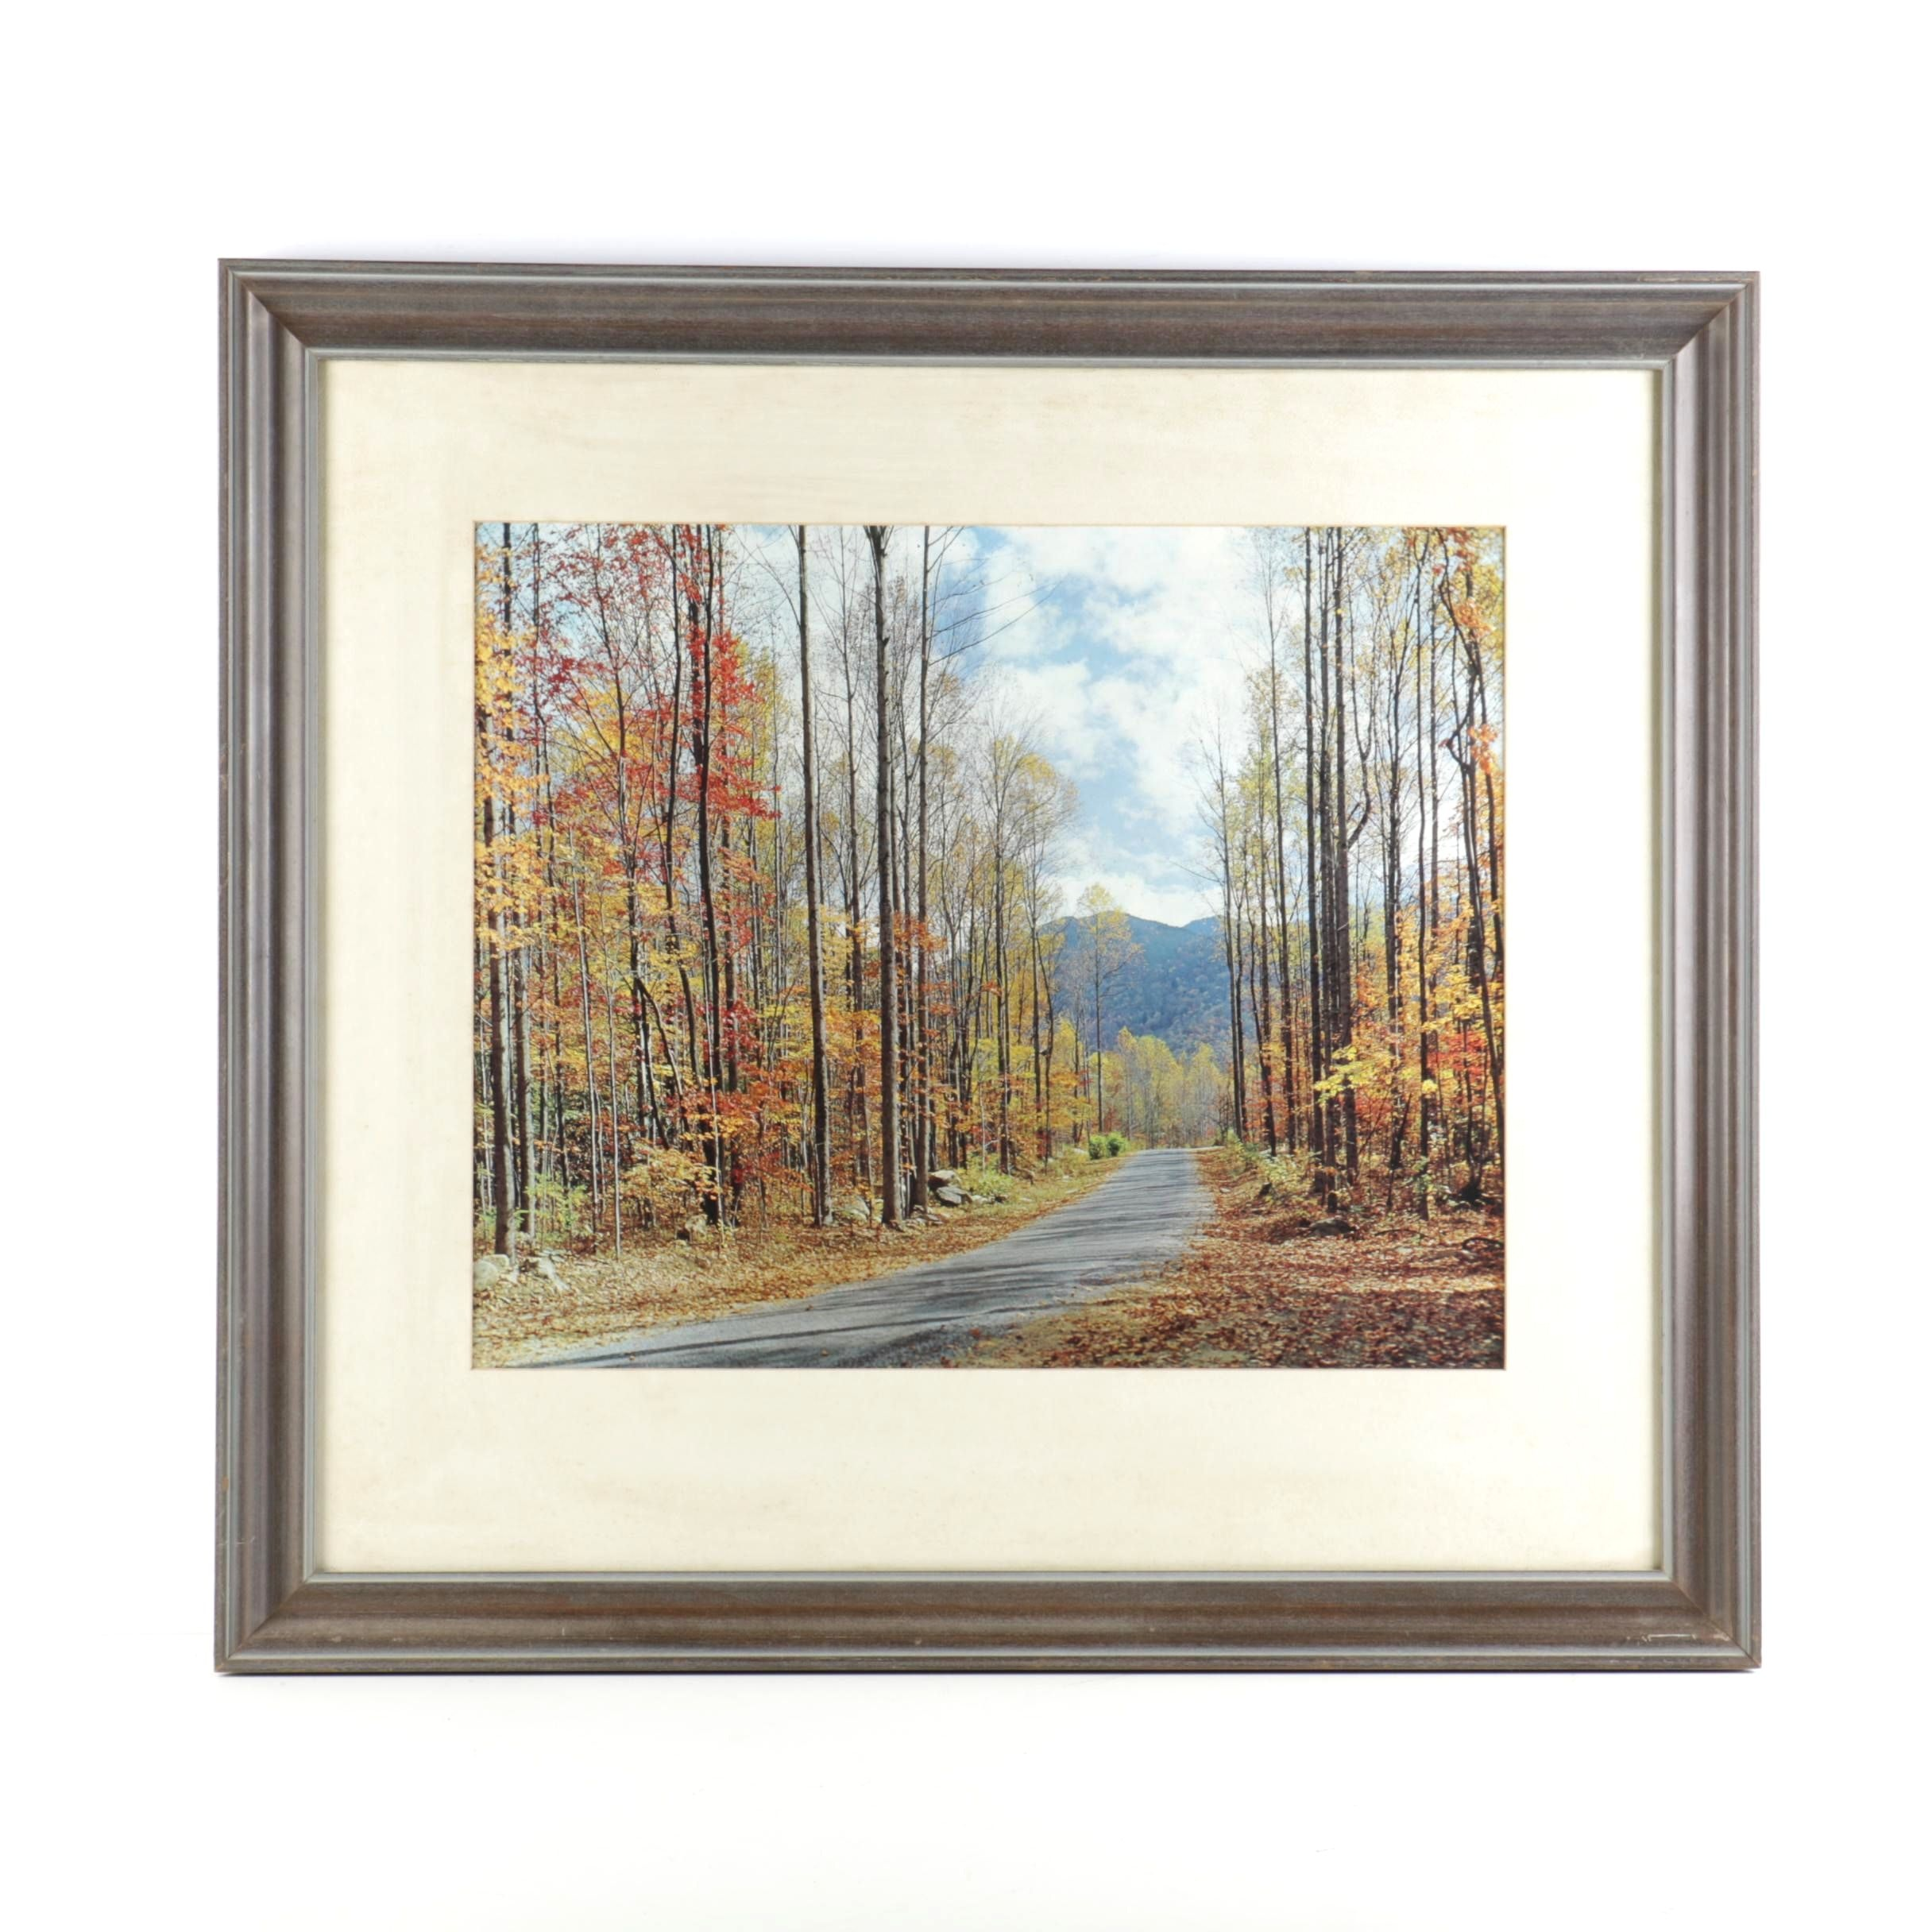 Framed Offset Lithograph on Paper of a Mountain Path